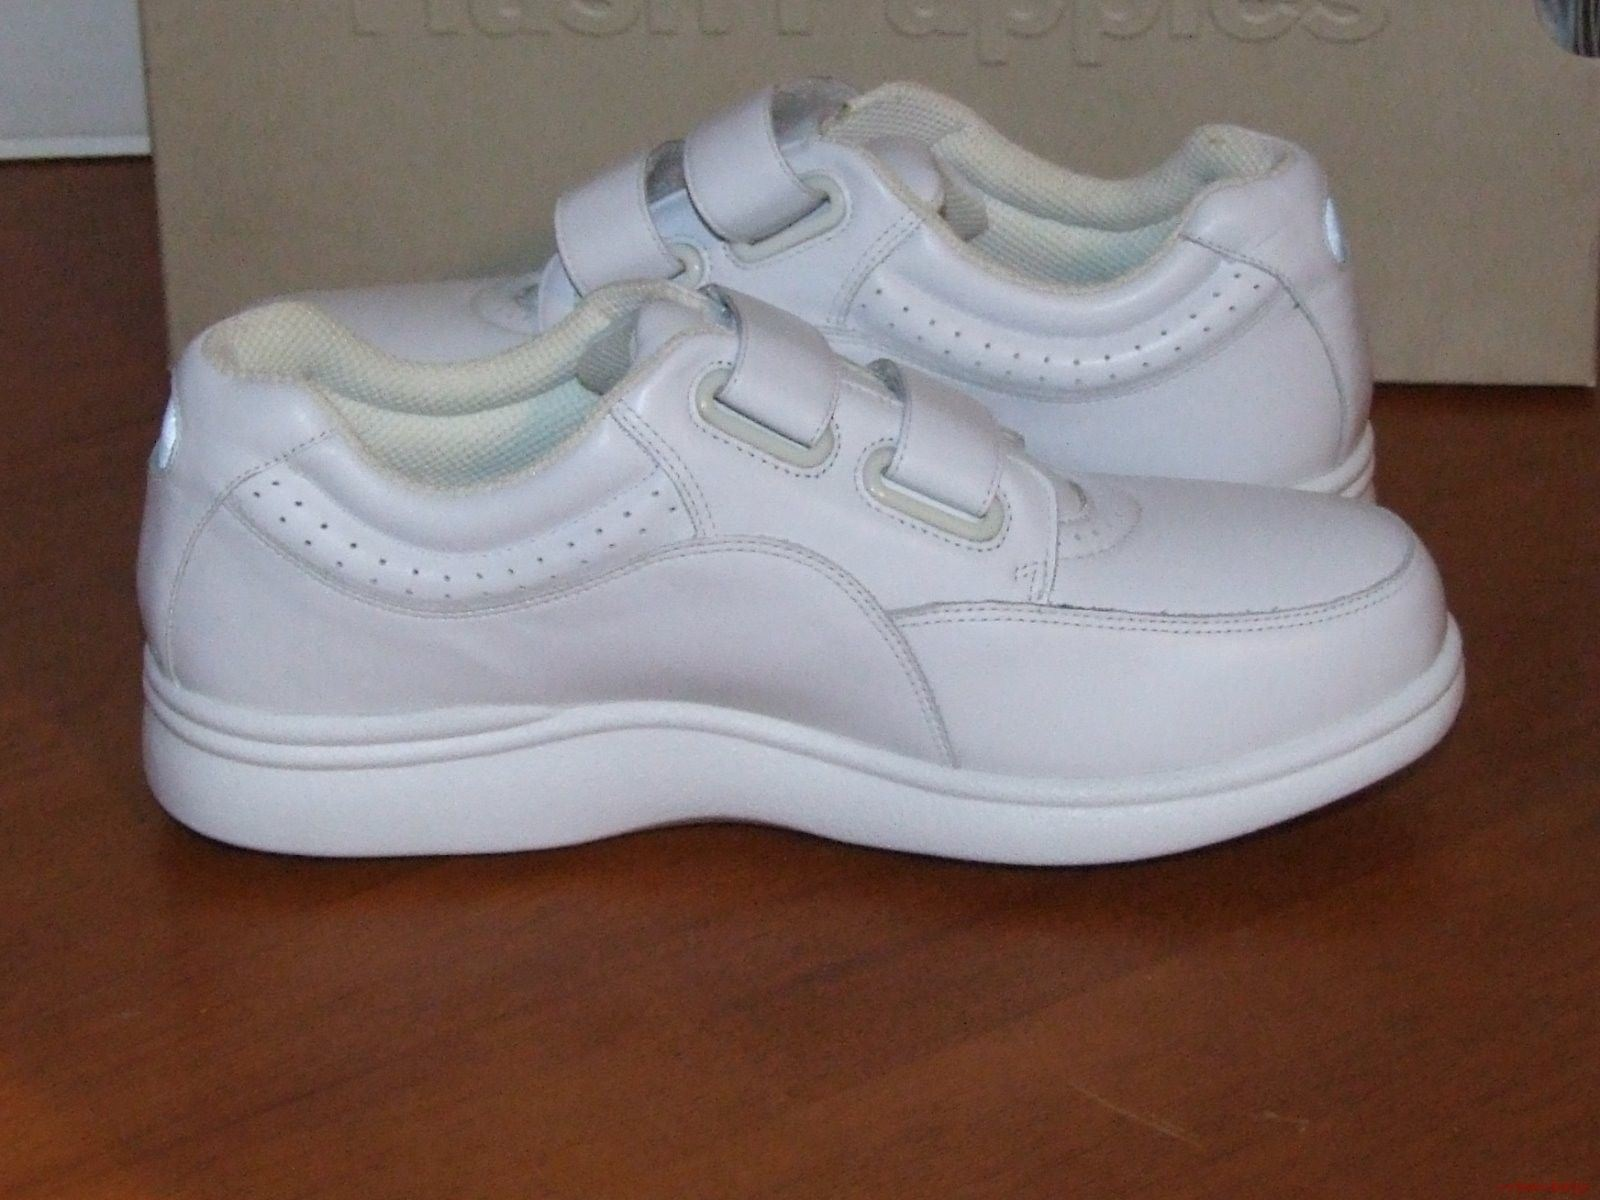 Hush Puppies Power Walker II II II Zapatillas De Cuero Blanco 28b8c2